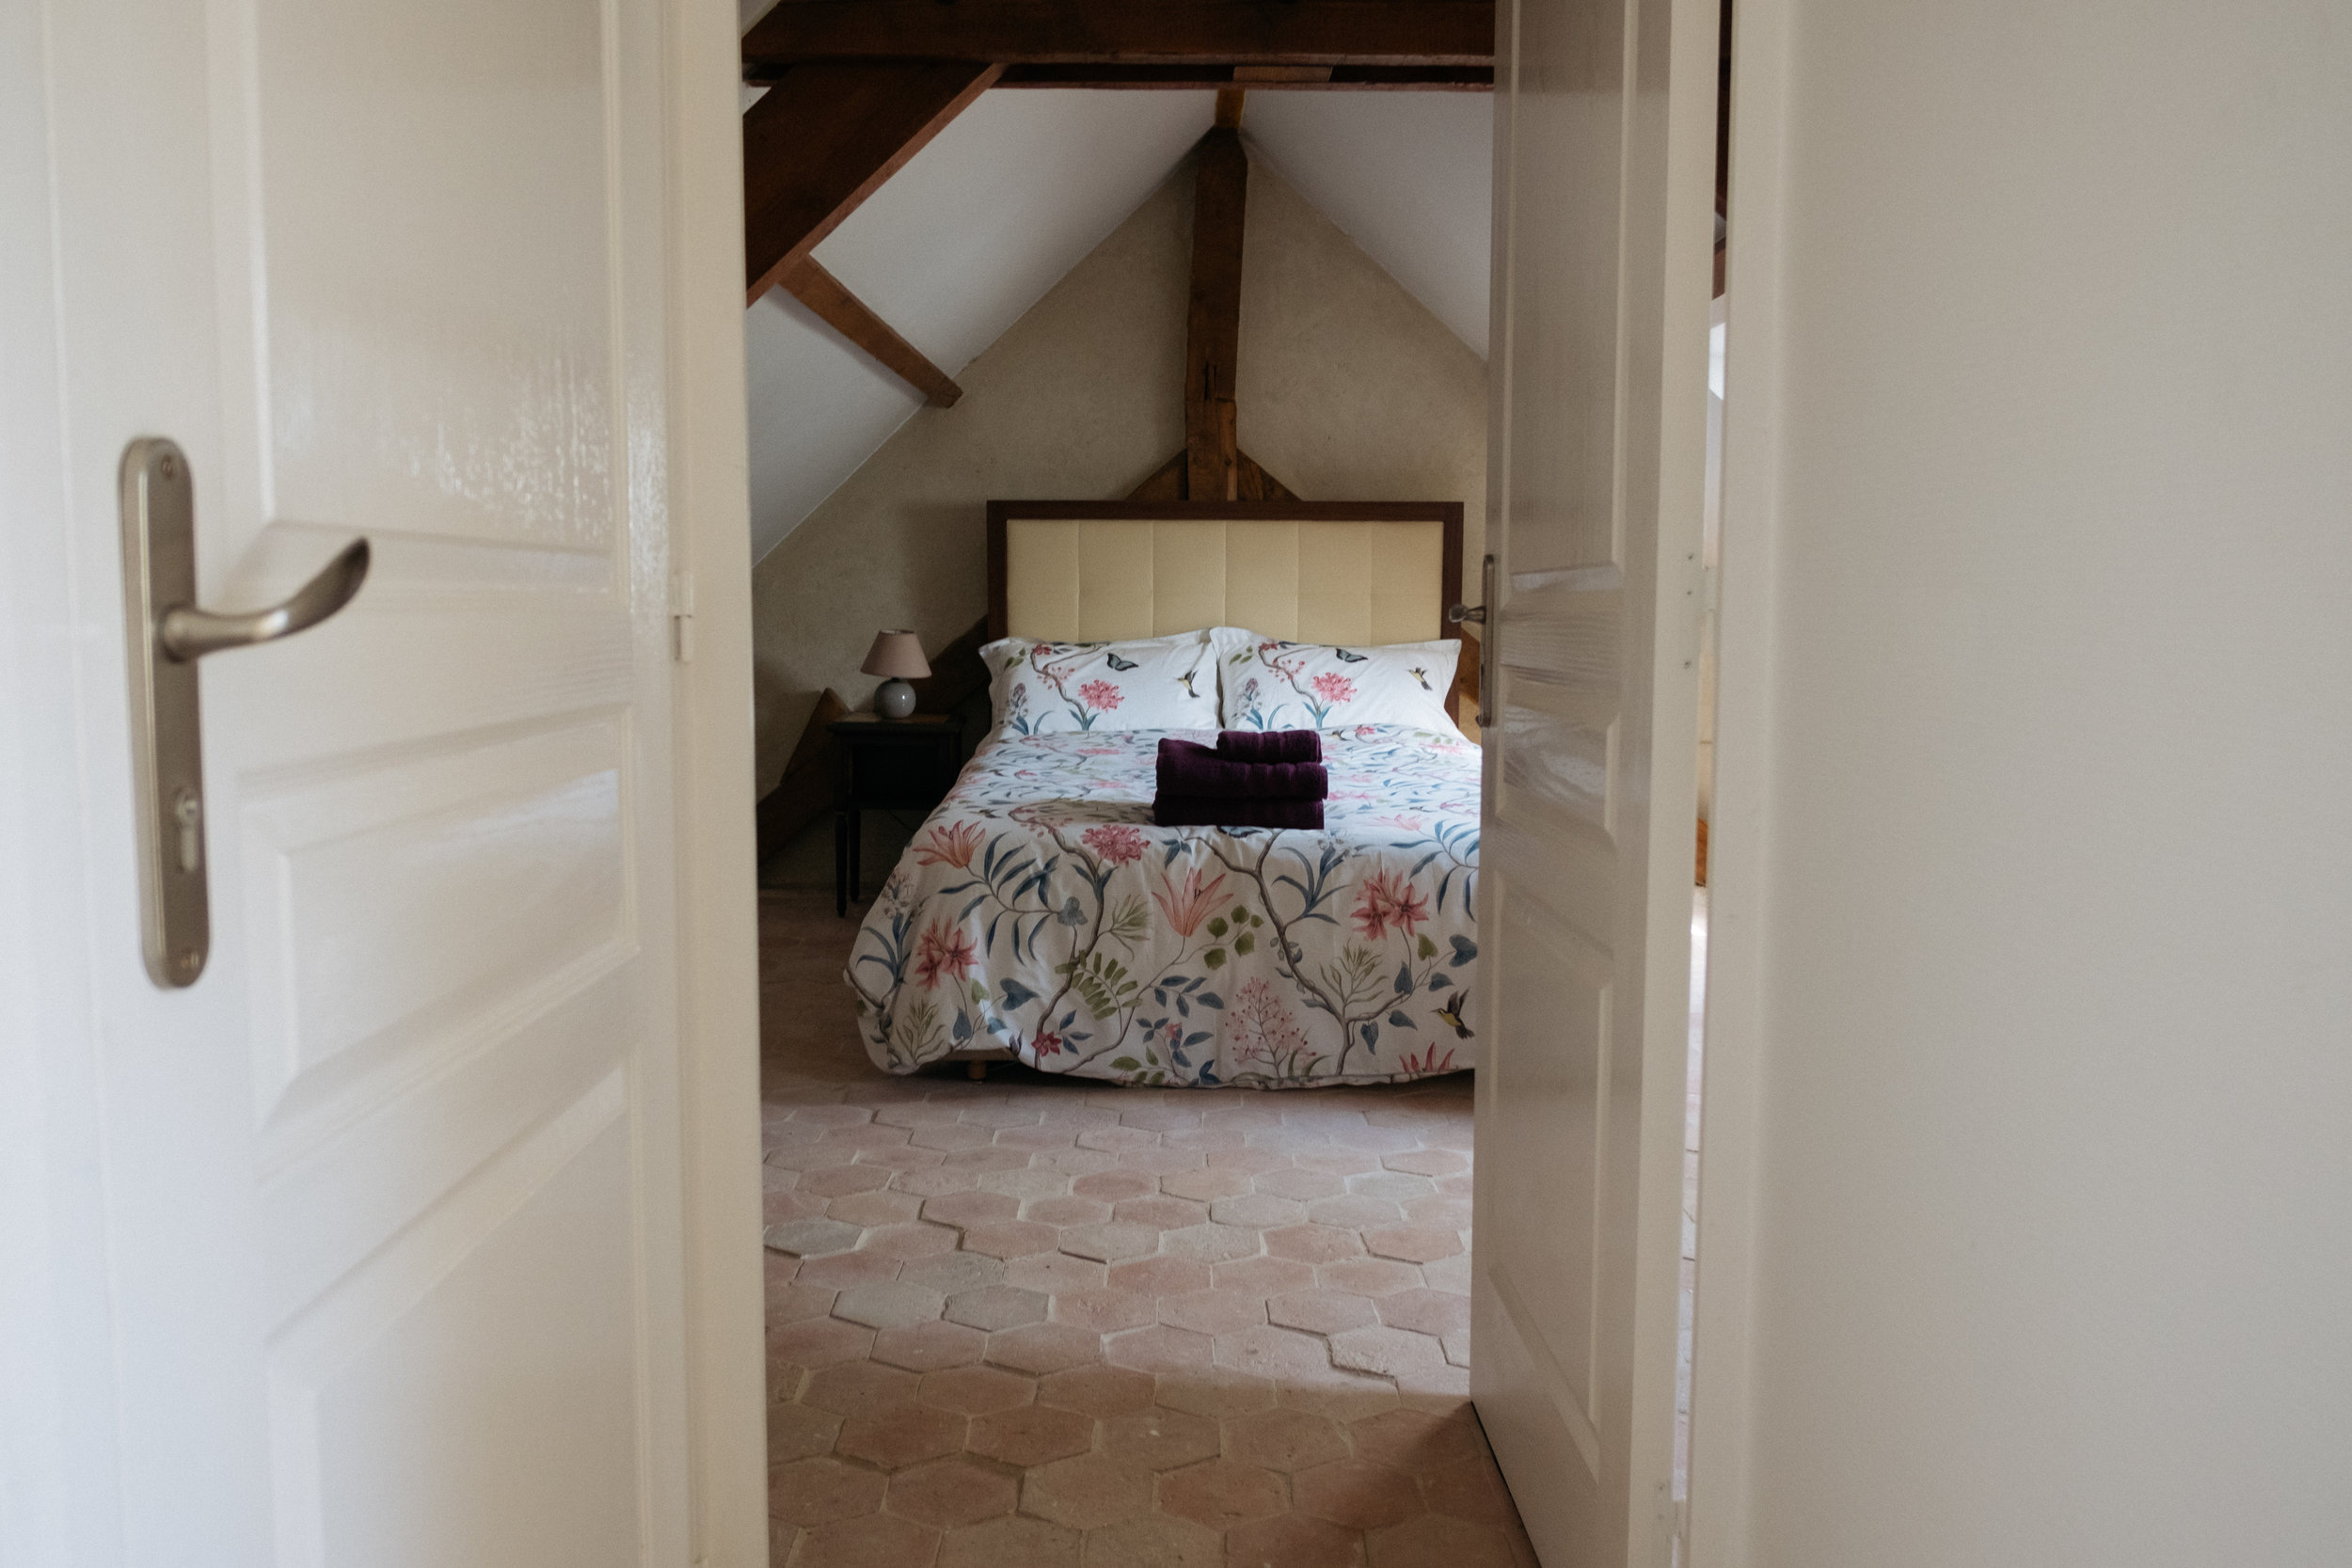 Bedroom in French gîte | Alternative Honeymoon Inspiration